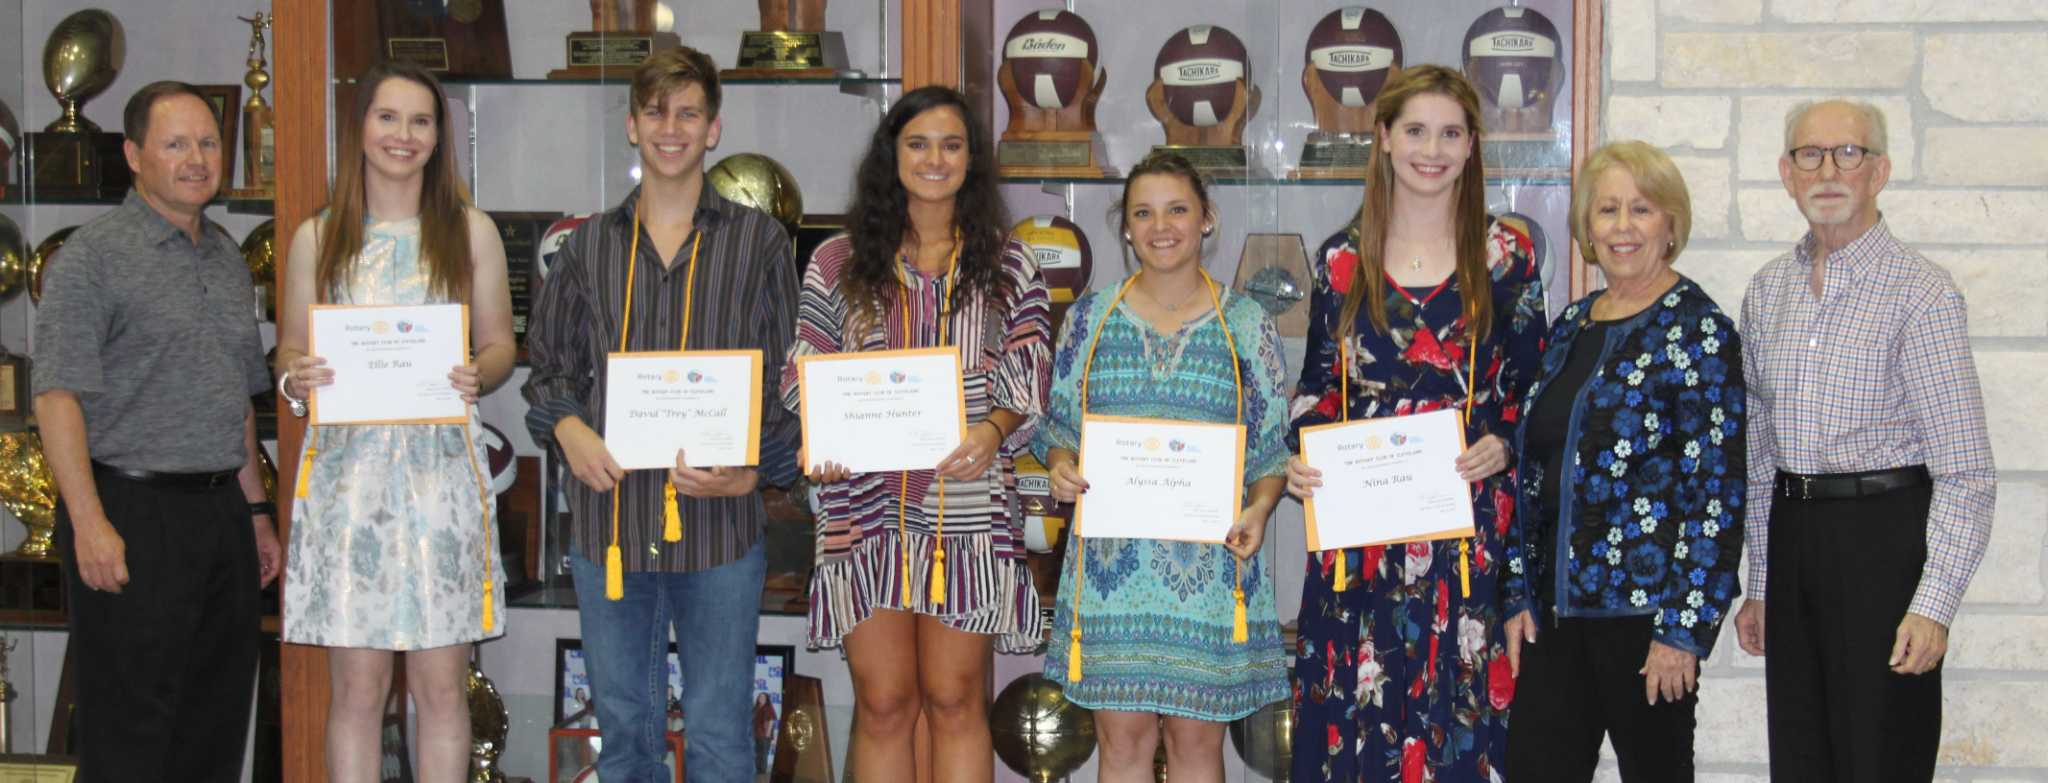 Tarkington High School Senior Award Ceremony